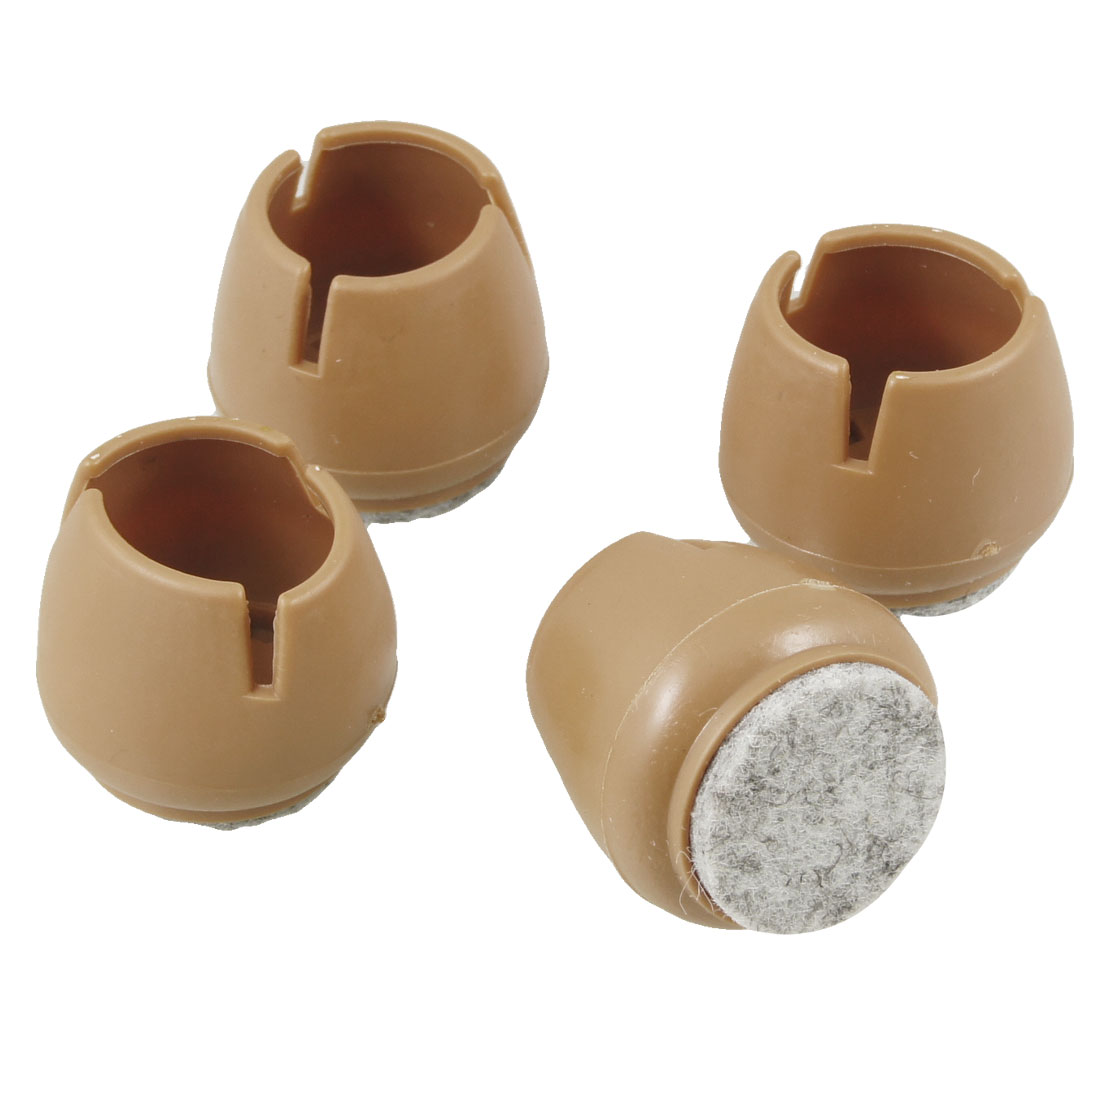 4 Pcs Brown 30mm Diameter Soft Plastic Round Desk Chair Foot Cover Guard